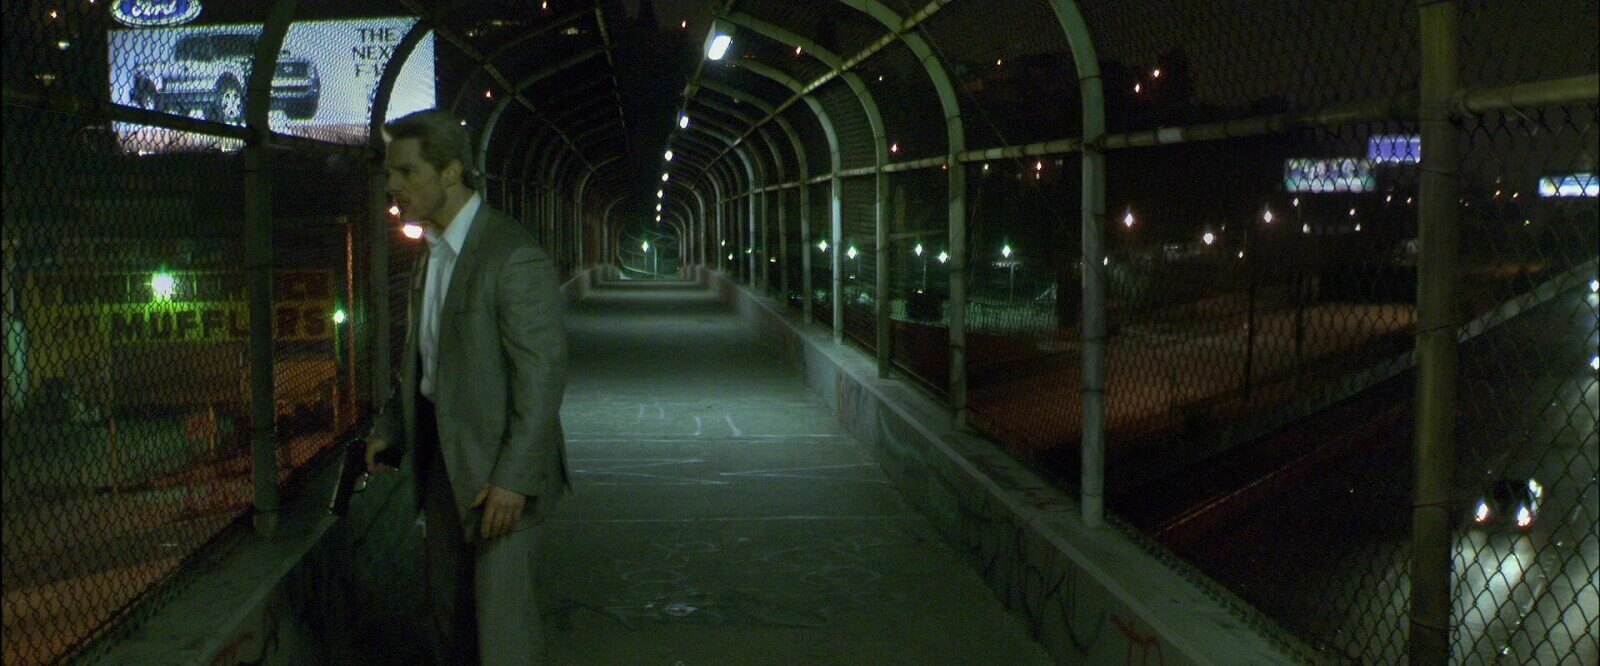 Collateral Explained - Mann found the perfect overpass for this Collateral movie scene